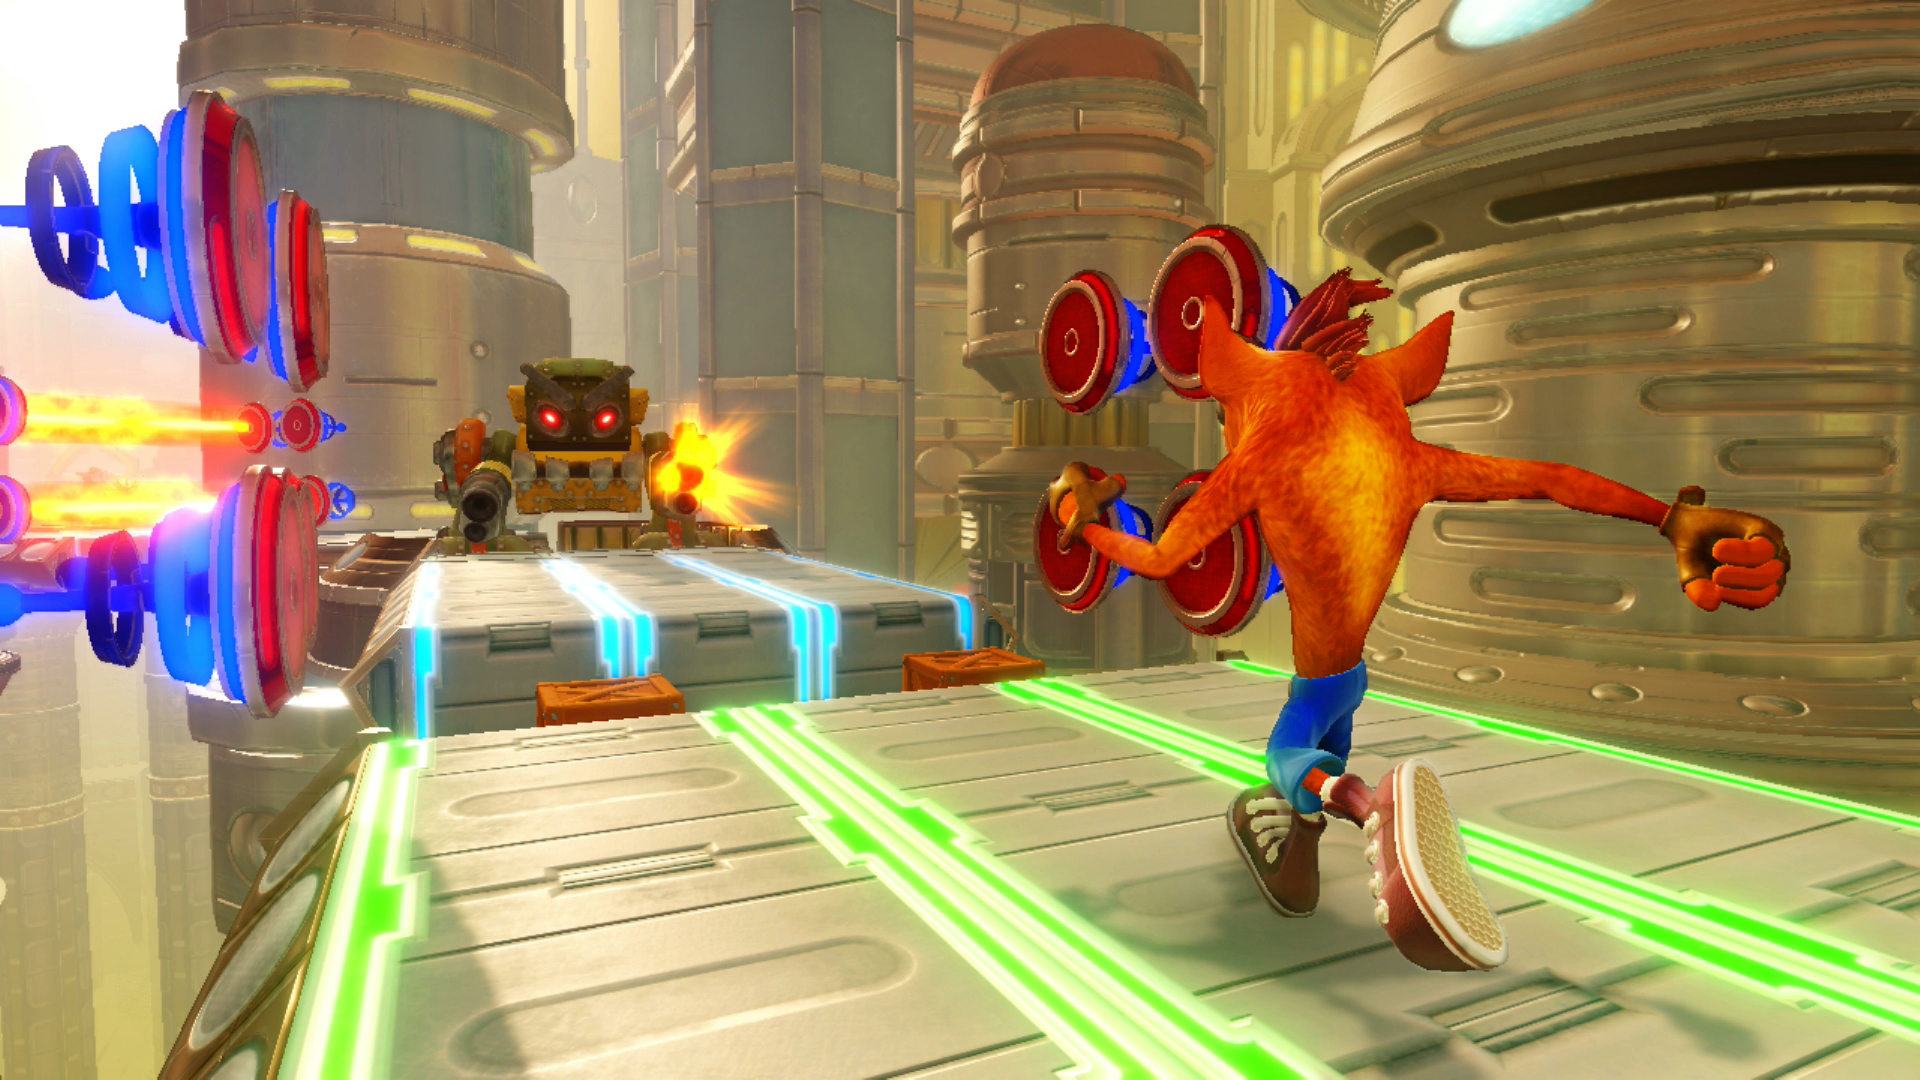 Crash Bandicoot N Sane Trilogy Looks Amazing In 4k And On Switch